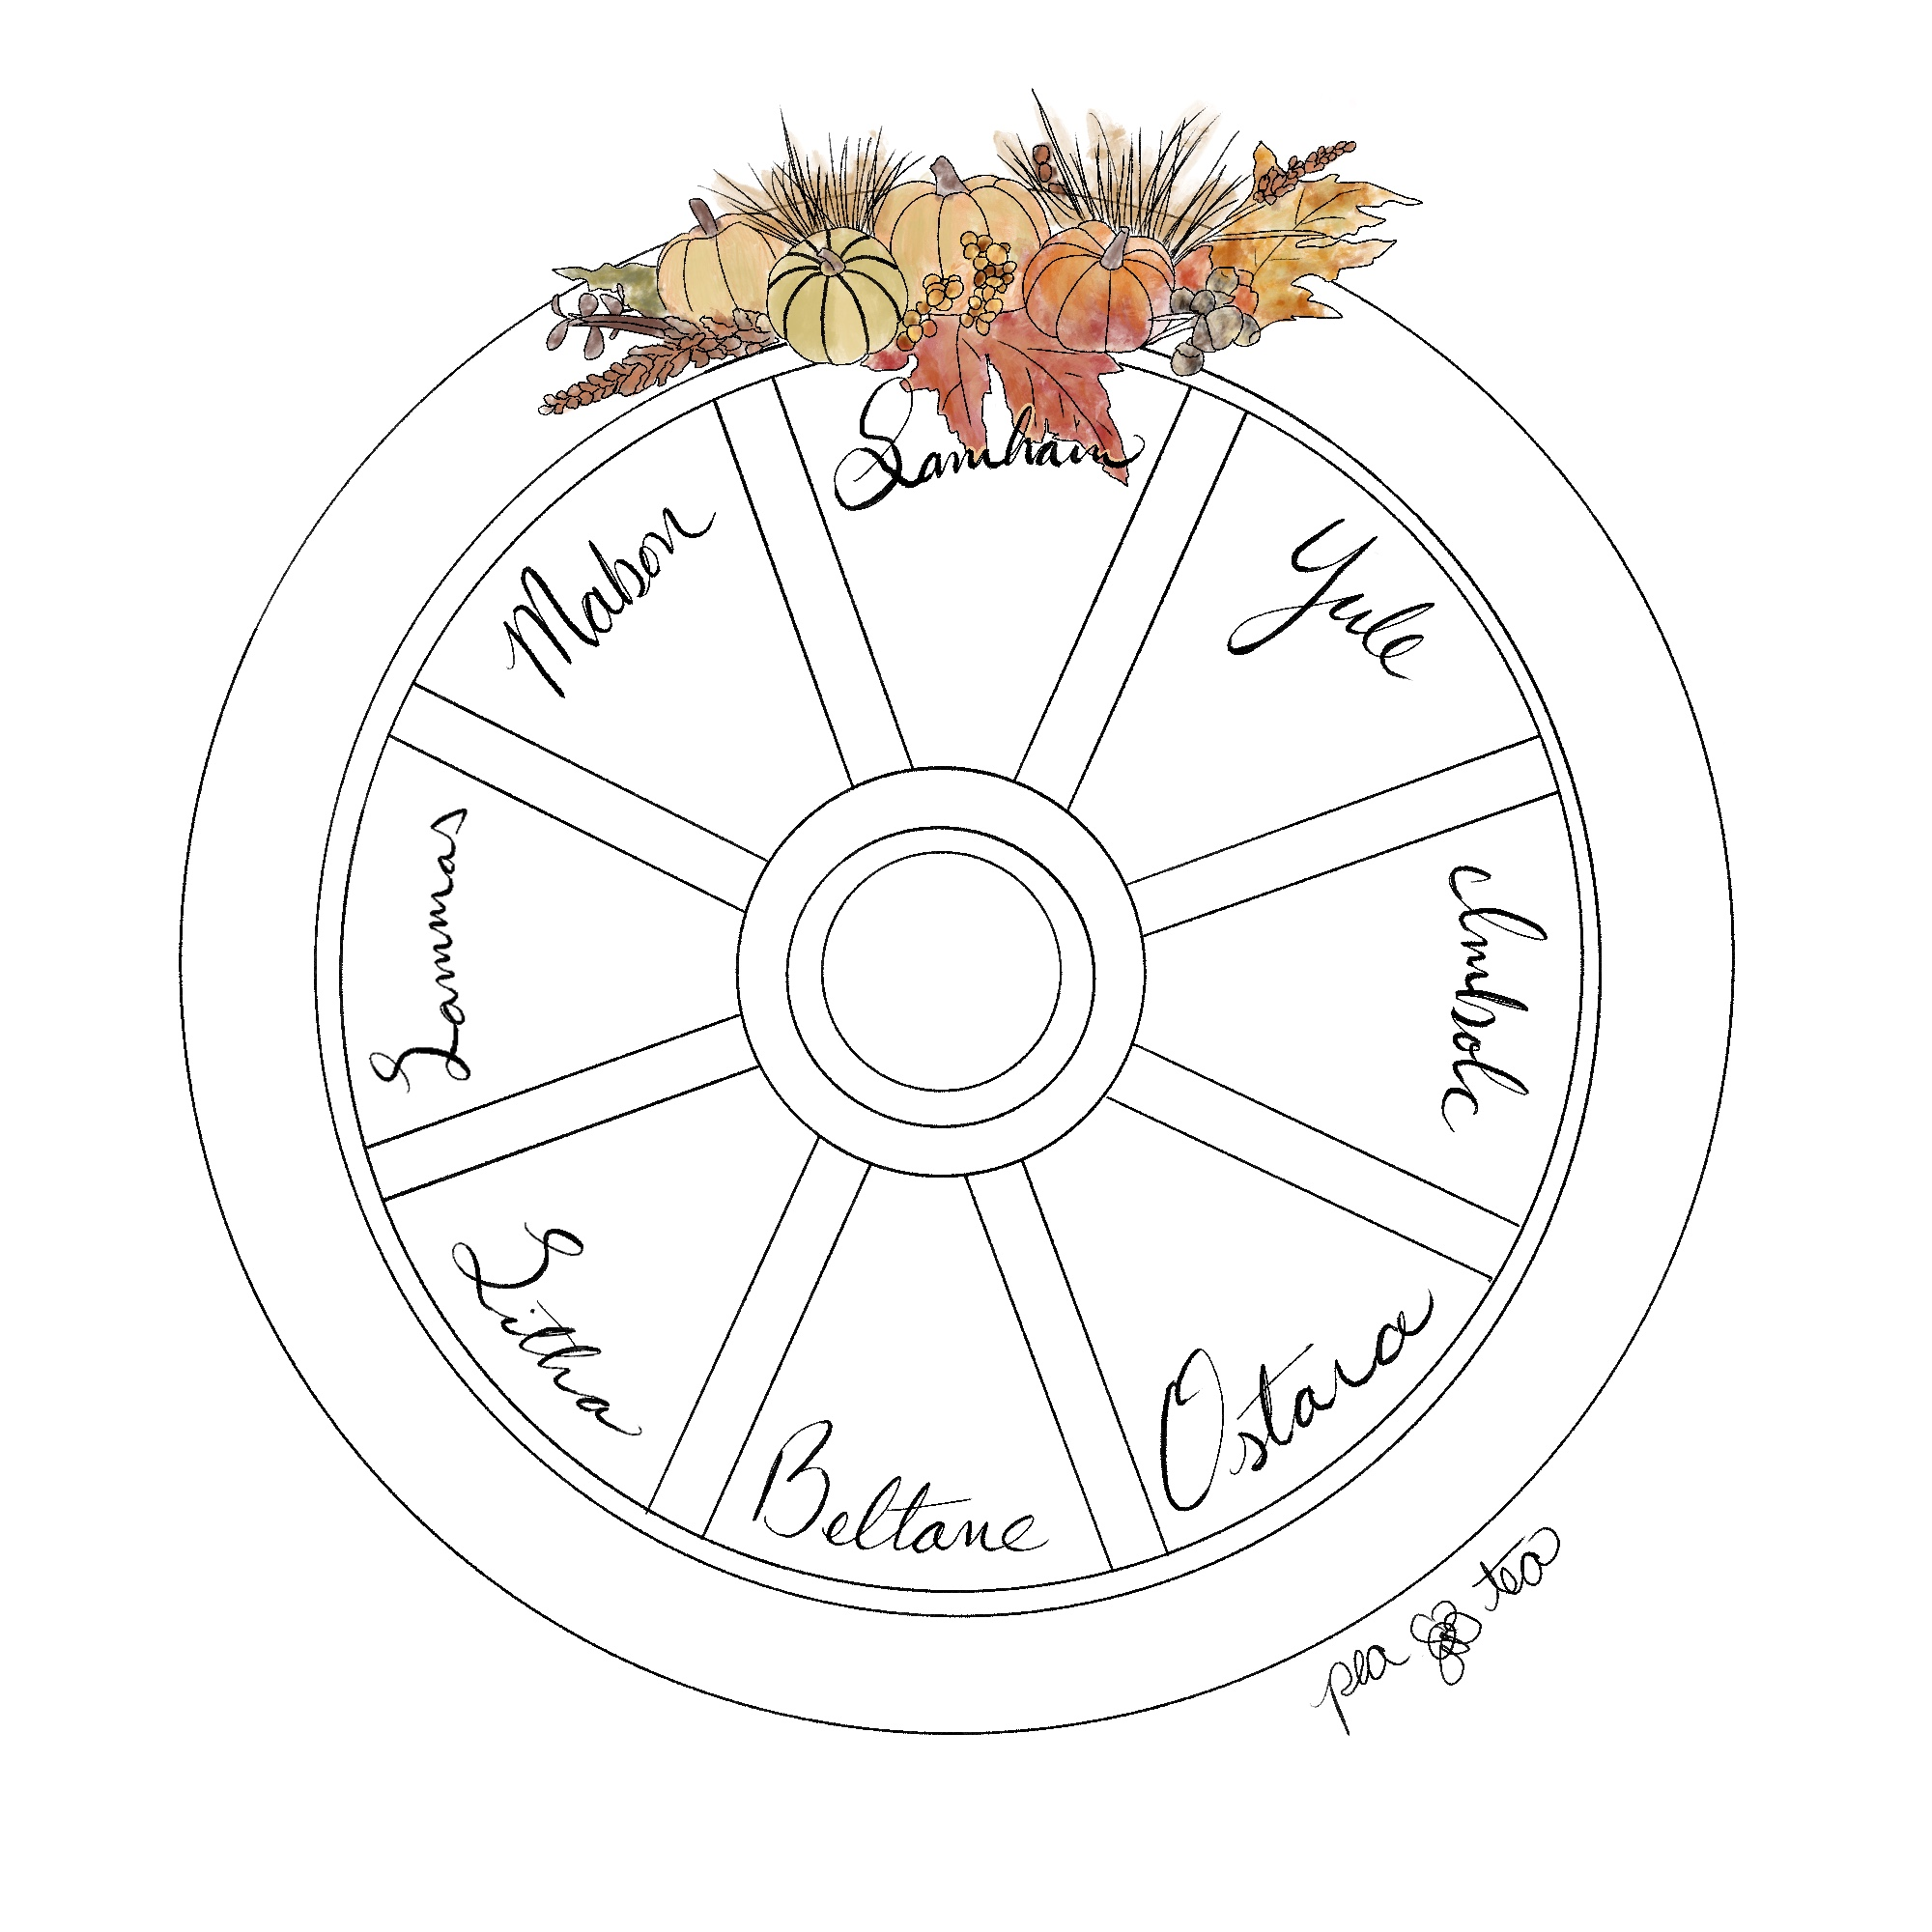 Pencil sketch of a wagon wheel with the pagan sabats and equinoxes written around the inside of the circle. Samhain is at the top, with colorful autumnal florals and pumpkins painted in watercolors on the outer edge of the wheel.